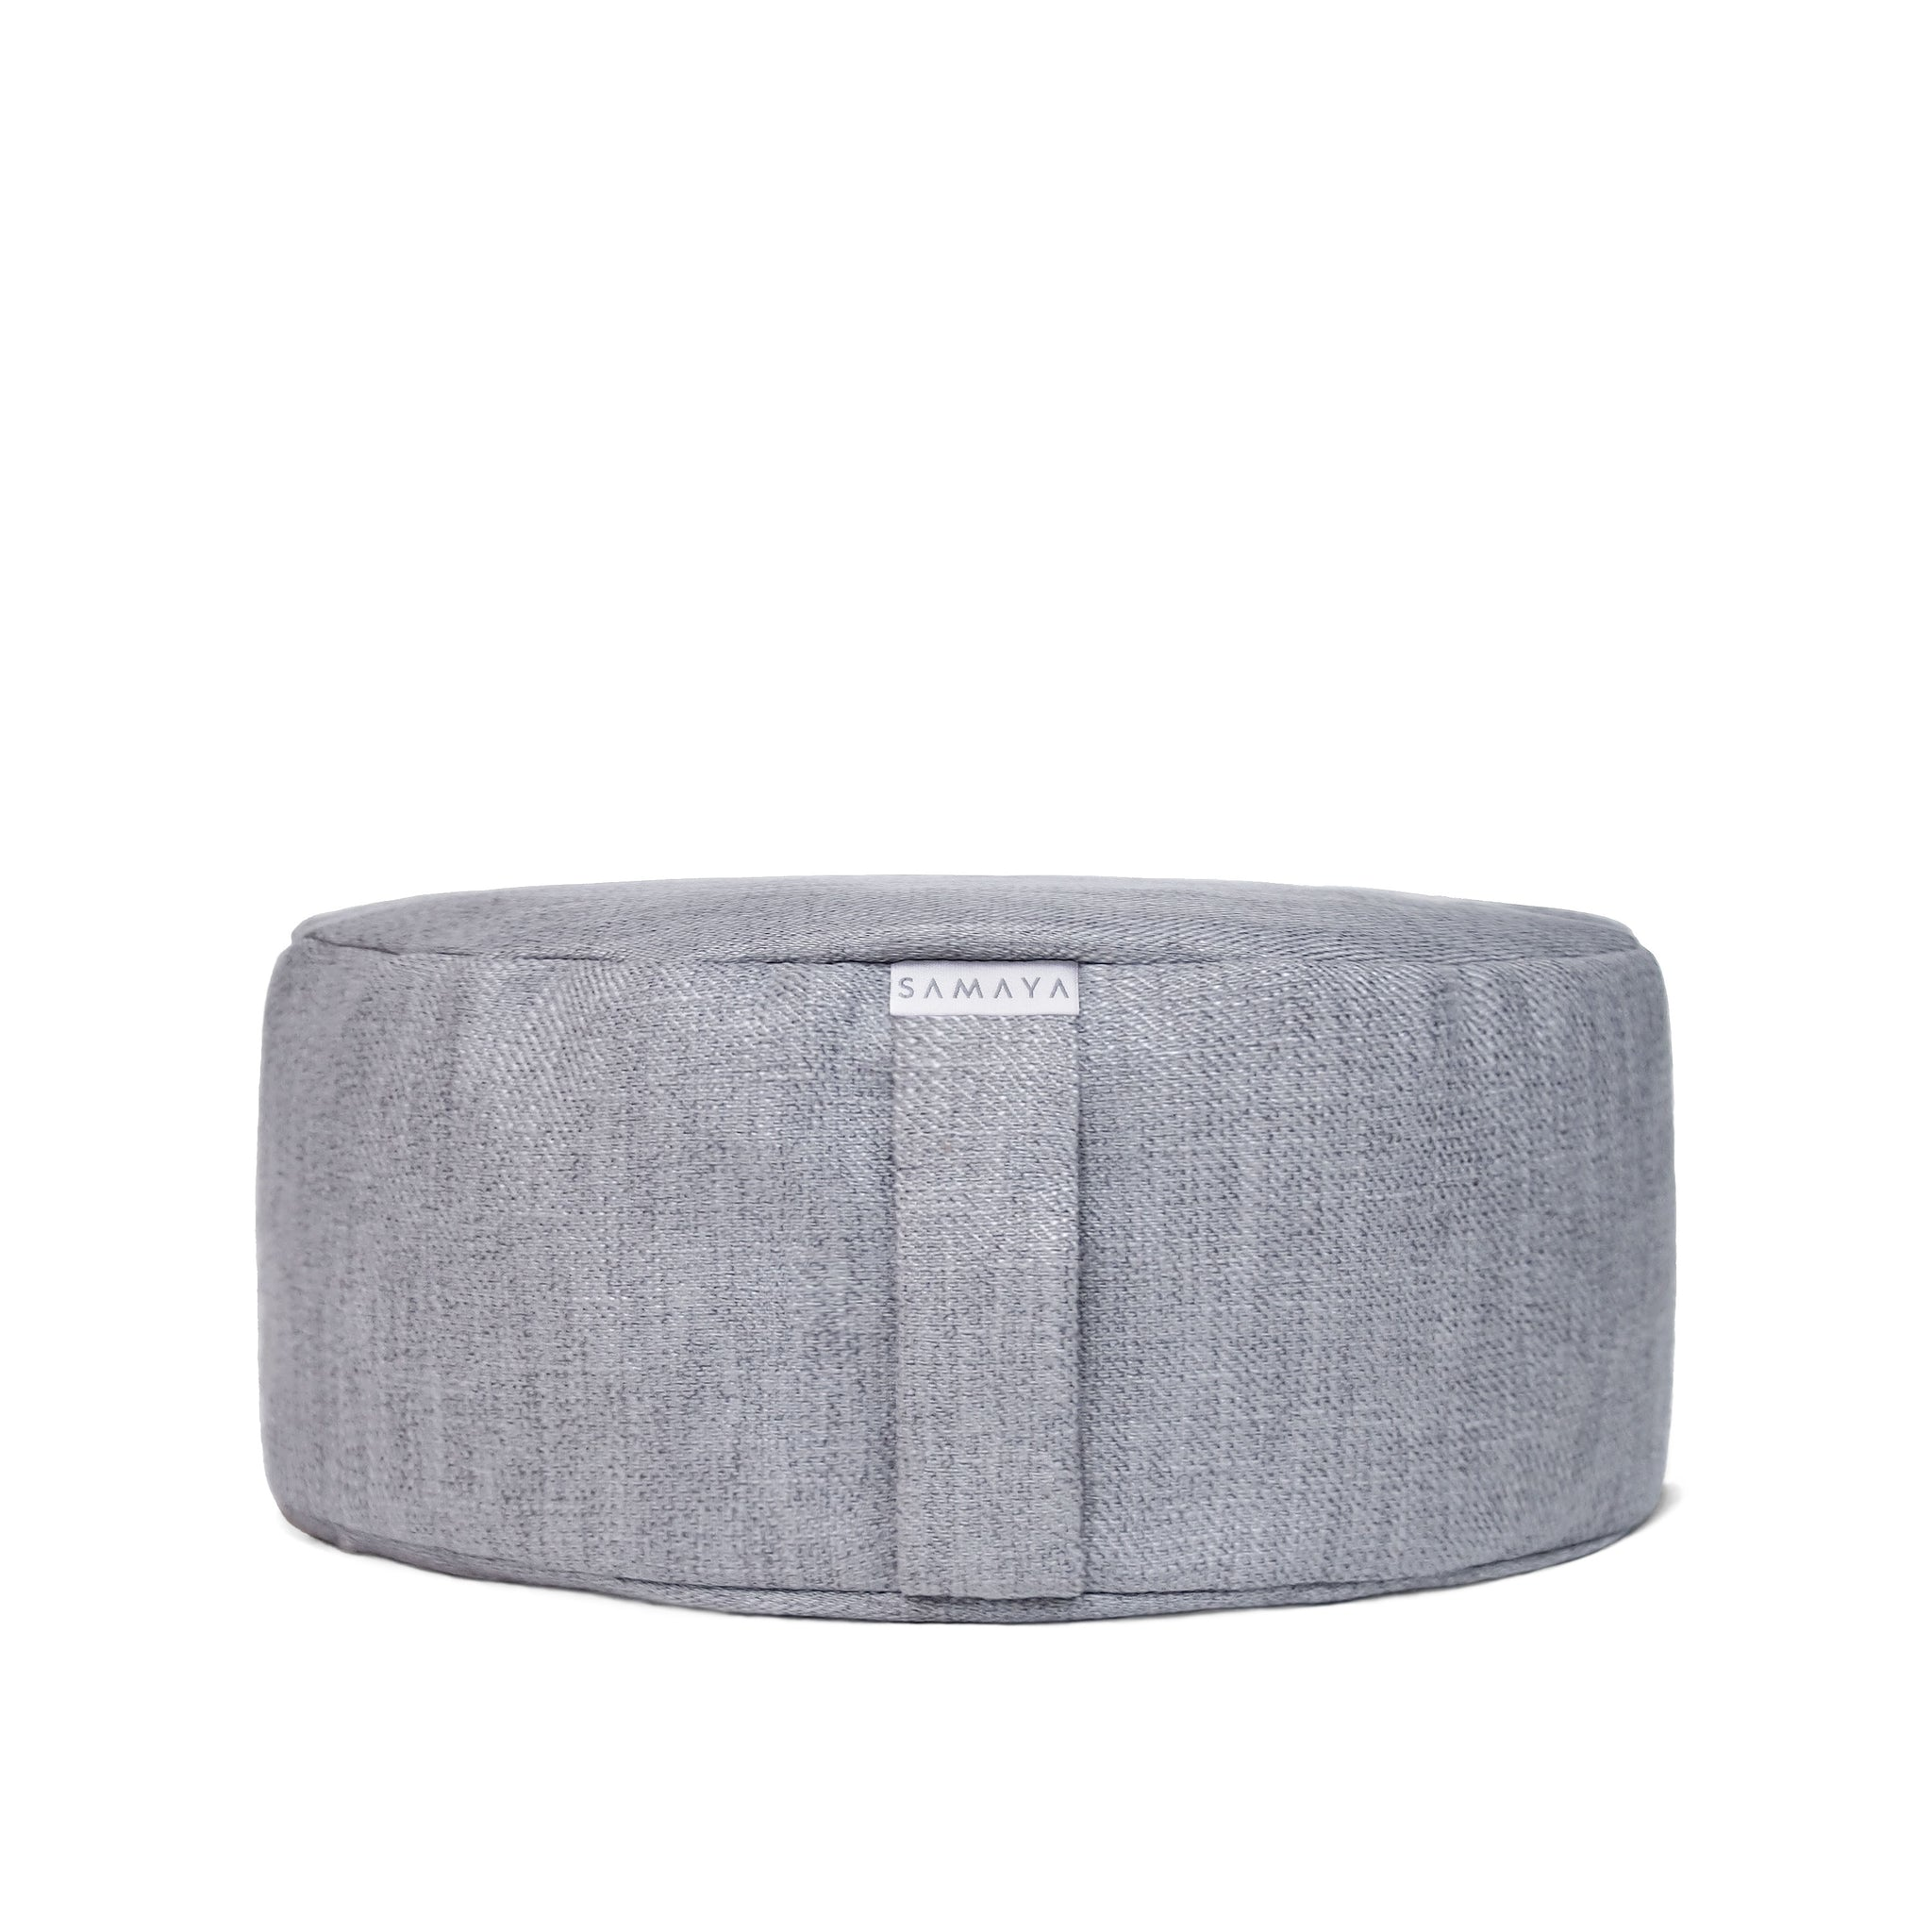 mats samaya collections stone styles round cushions all front cushion meditation